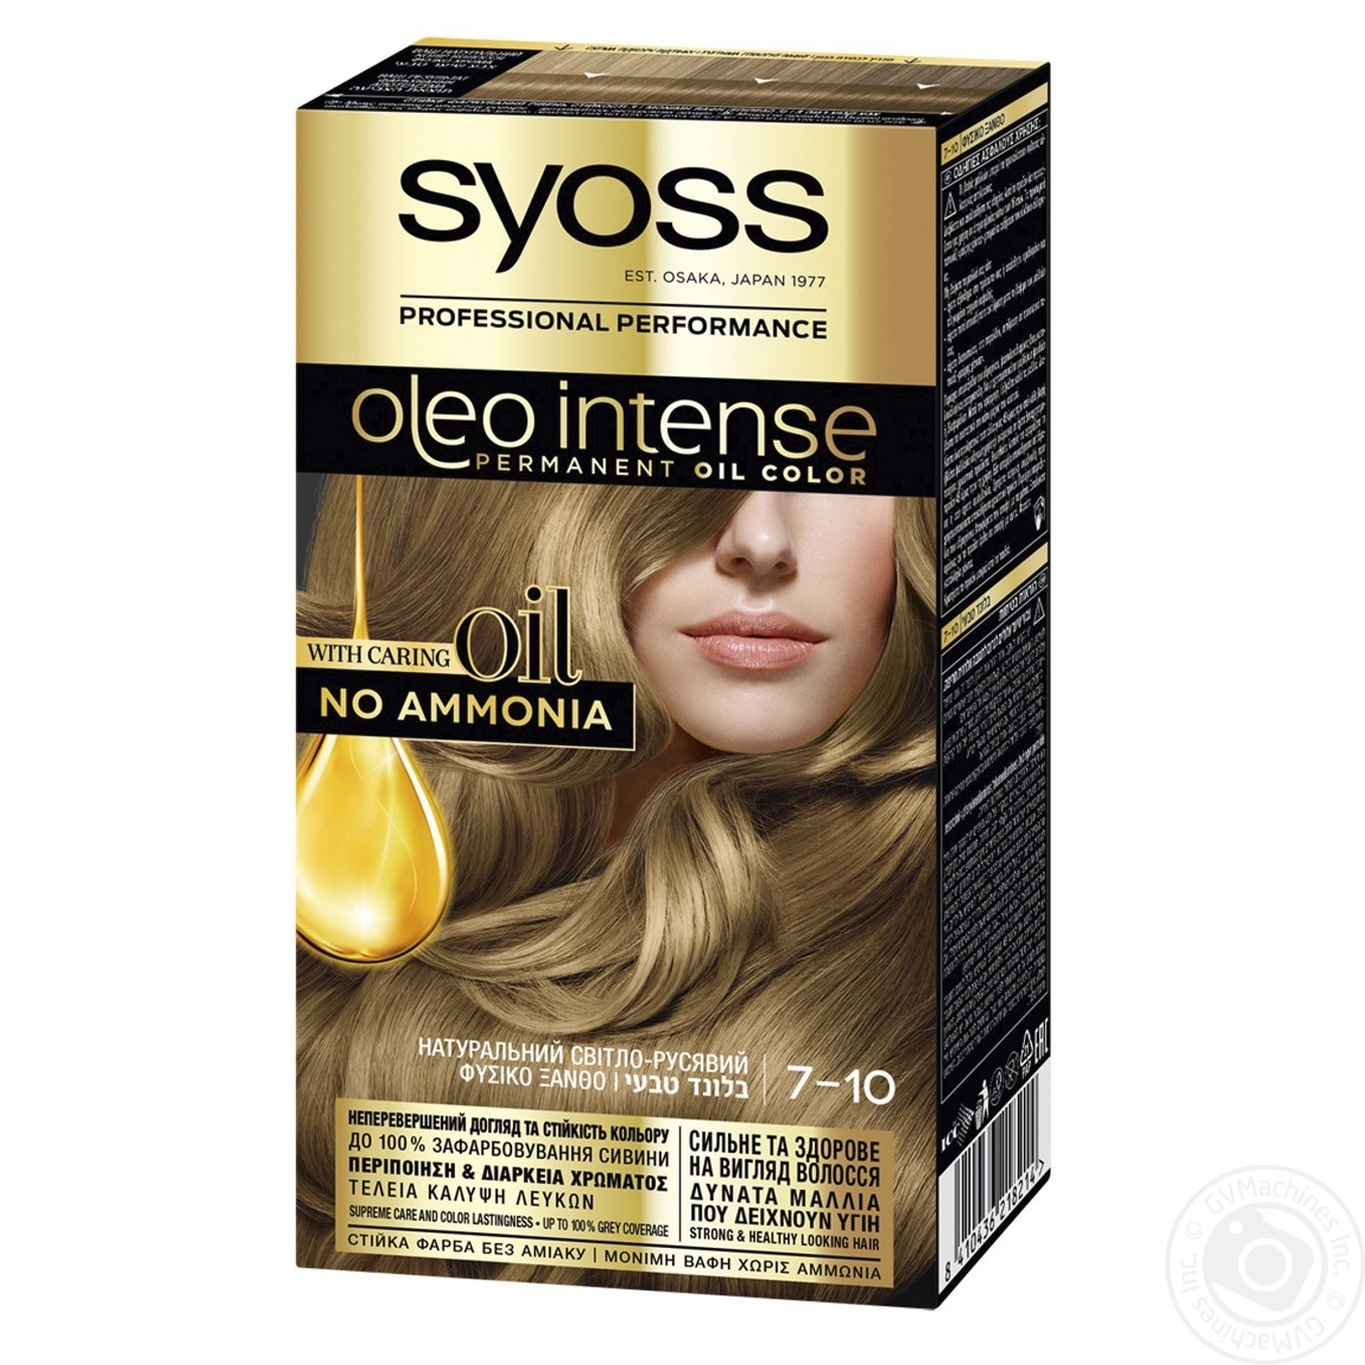 Купить 486, Краска для волос Syoss Oleo Intense 7-10 Натуральный светло-русый без аммиака 115мл